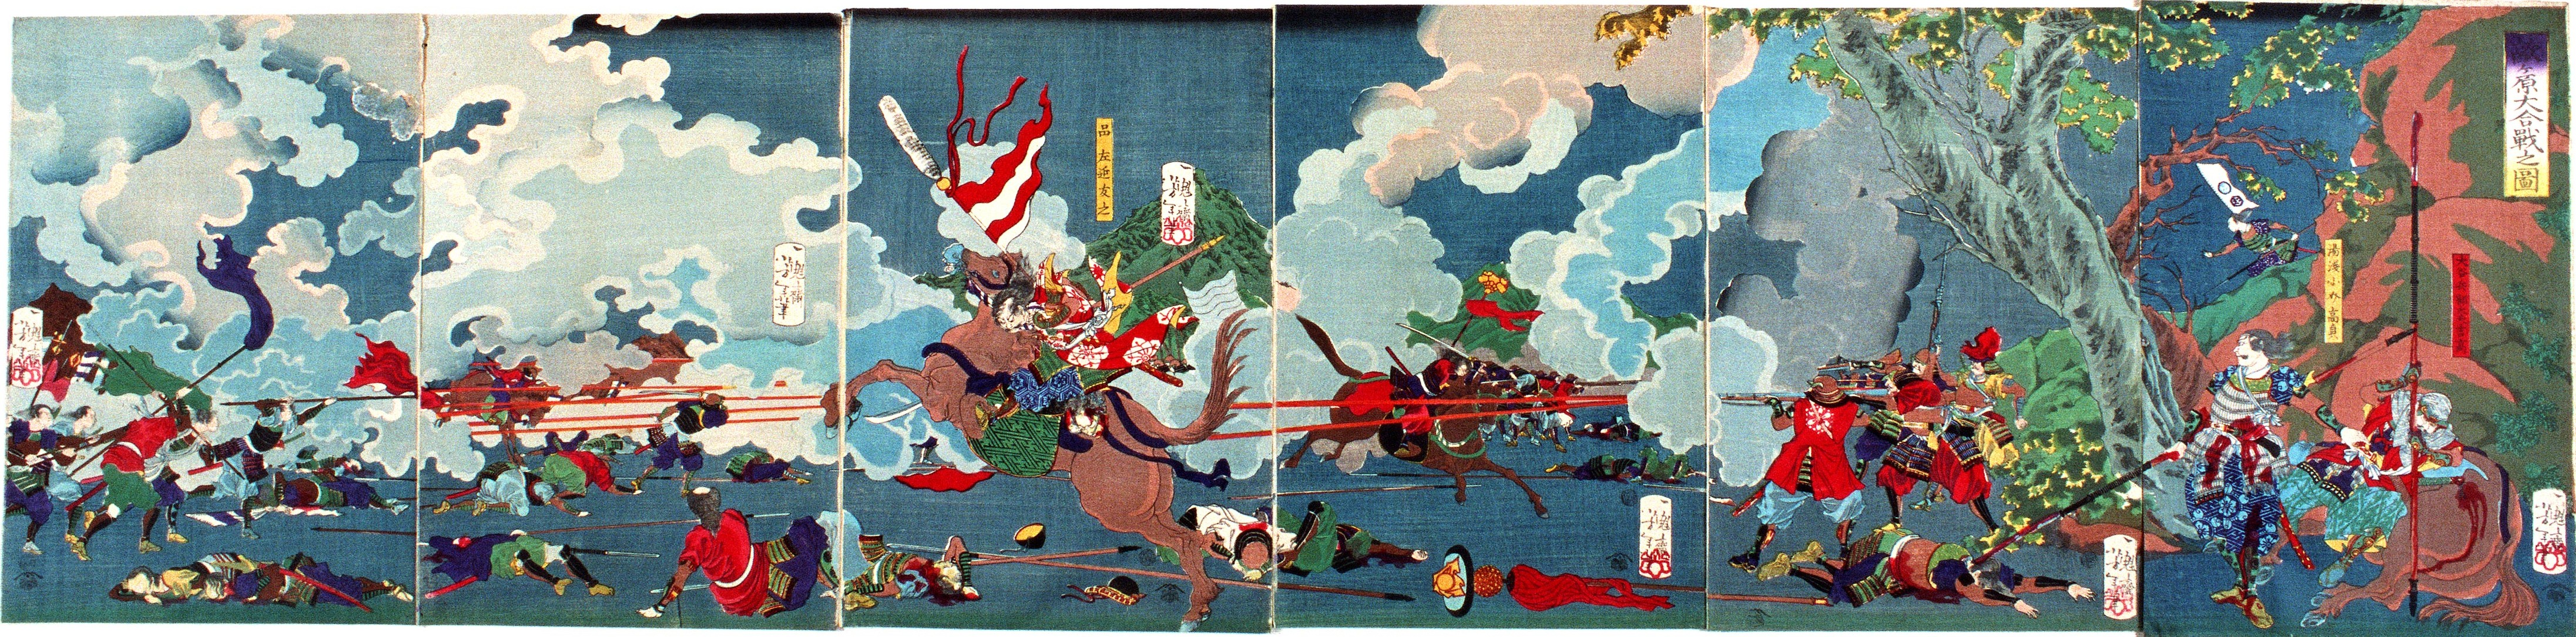 File:Battle of Sekigahara folding screen.jpg - Wikipedia, the free ...